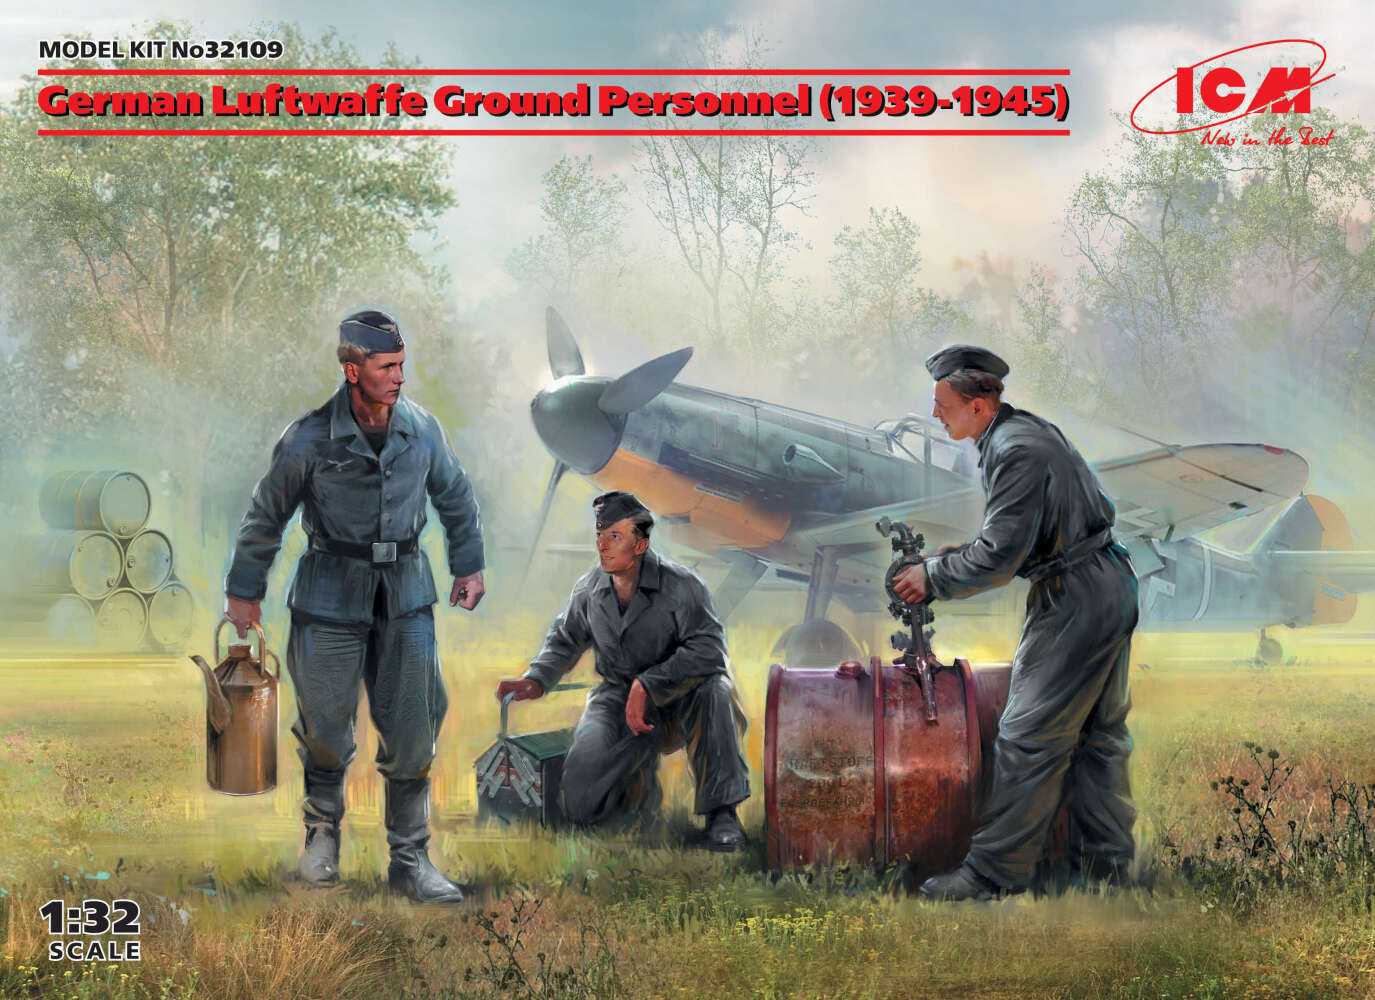 German Luftwaffe Ground Personnel (1939-1945) (3 figures)